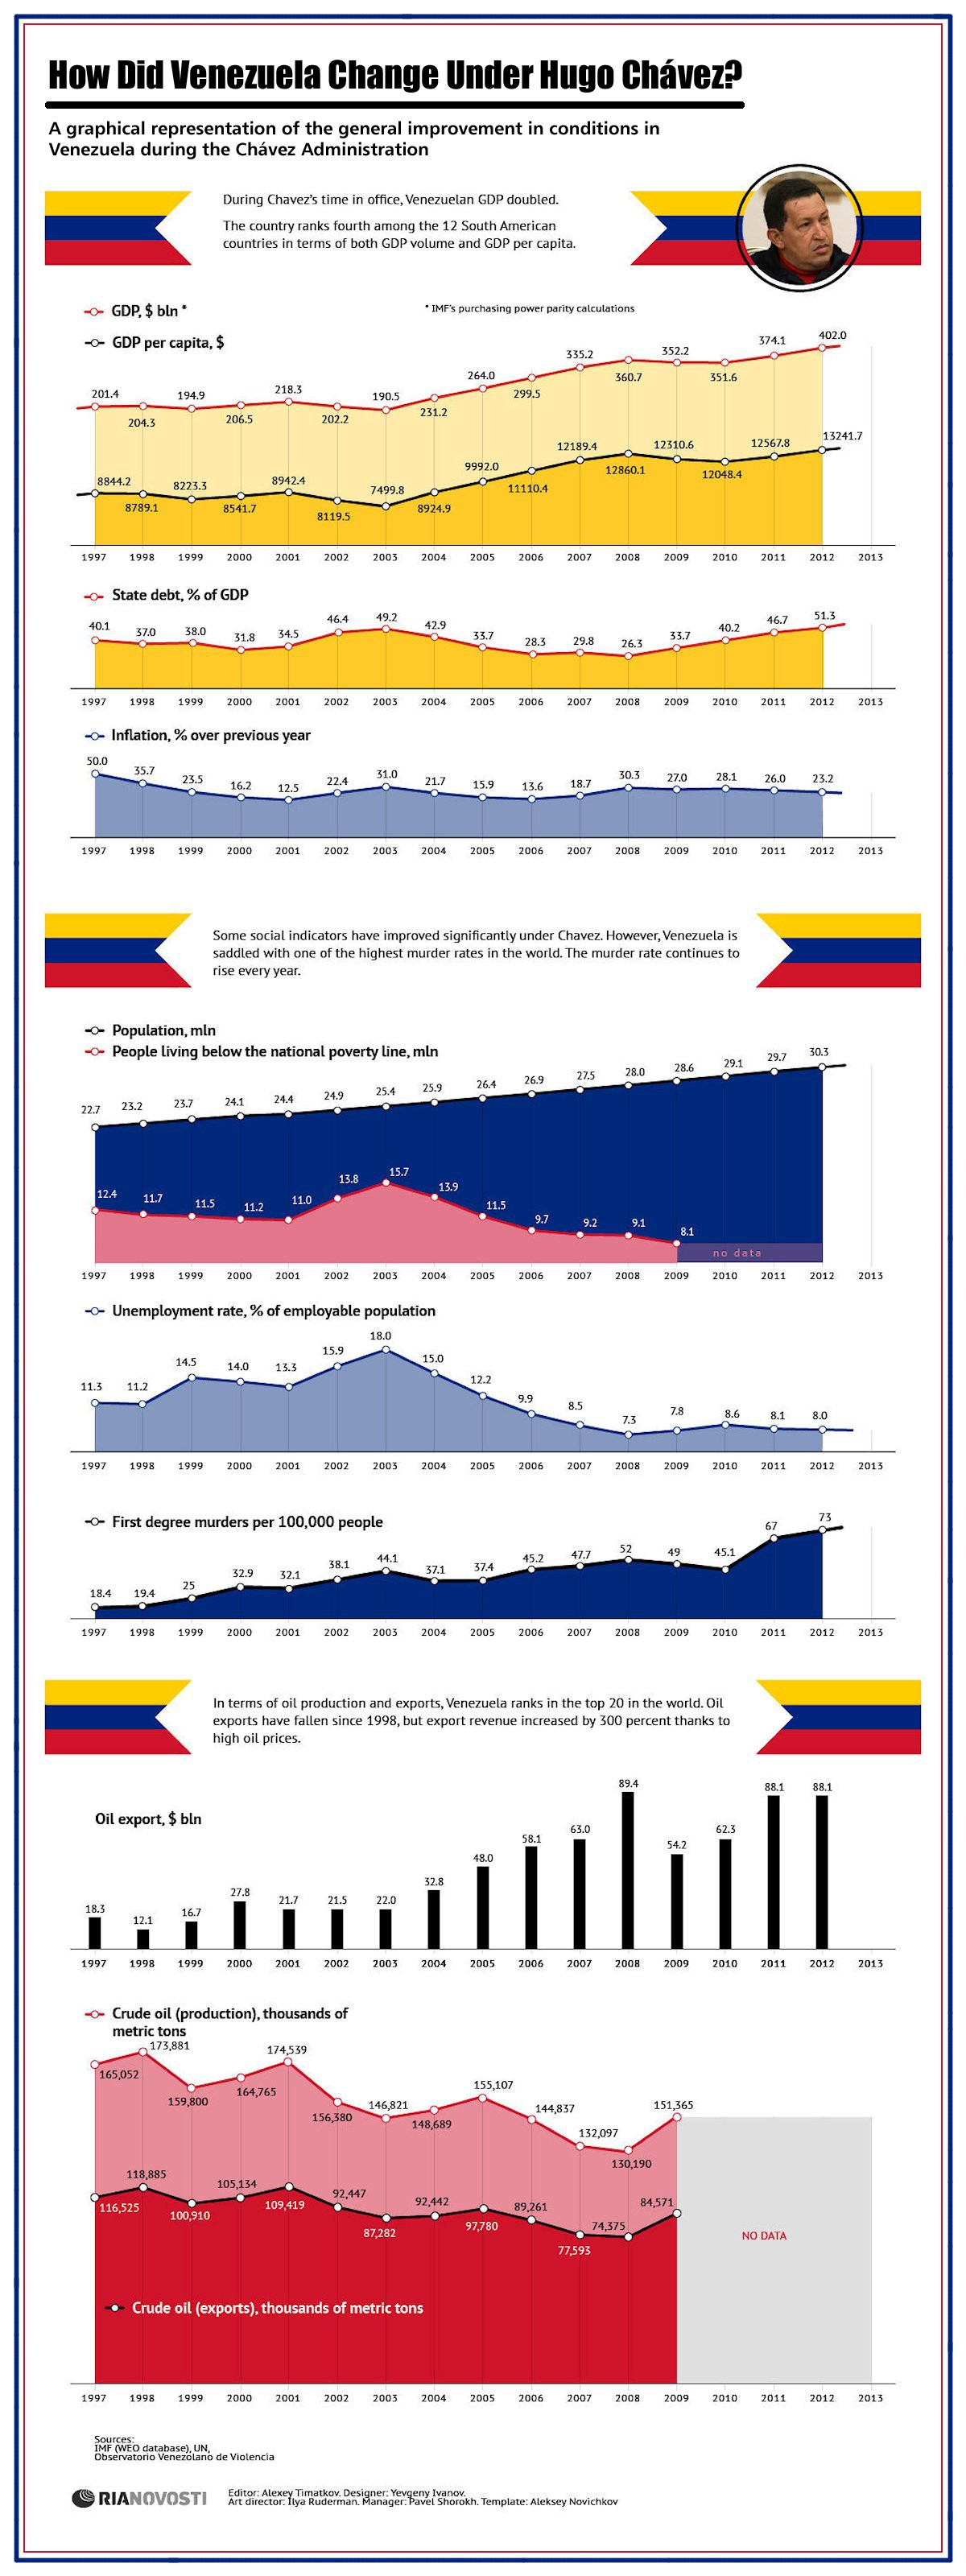 00 RIA-Novosti Infographics. How Did Venezuela Change Under Hugo Chávez. 2013